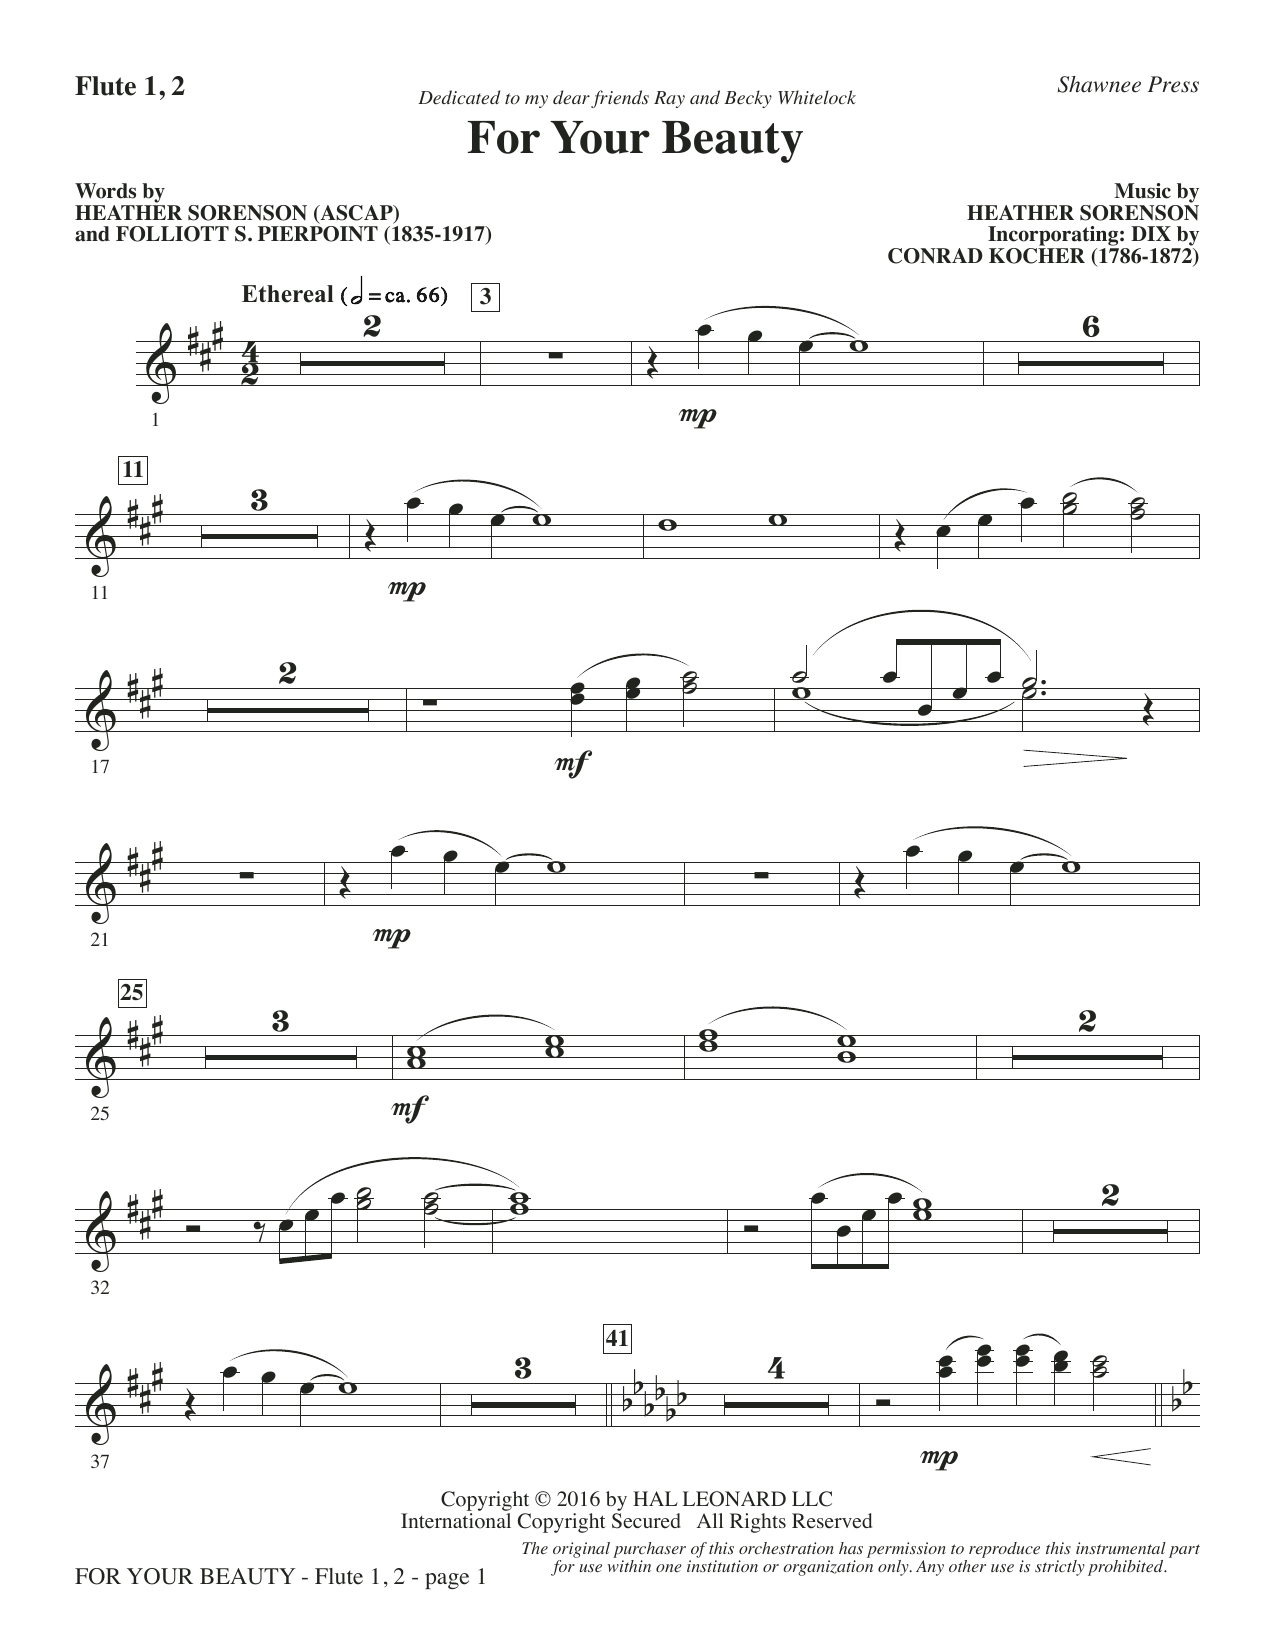 For Your Beauty - Flute 1 & 2 Sheet Music